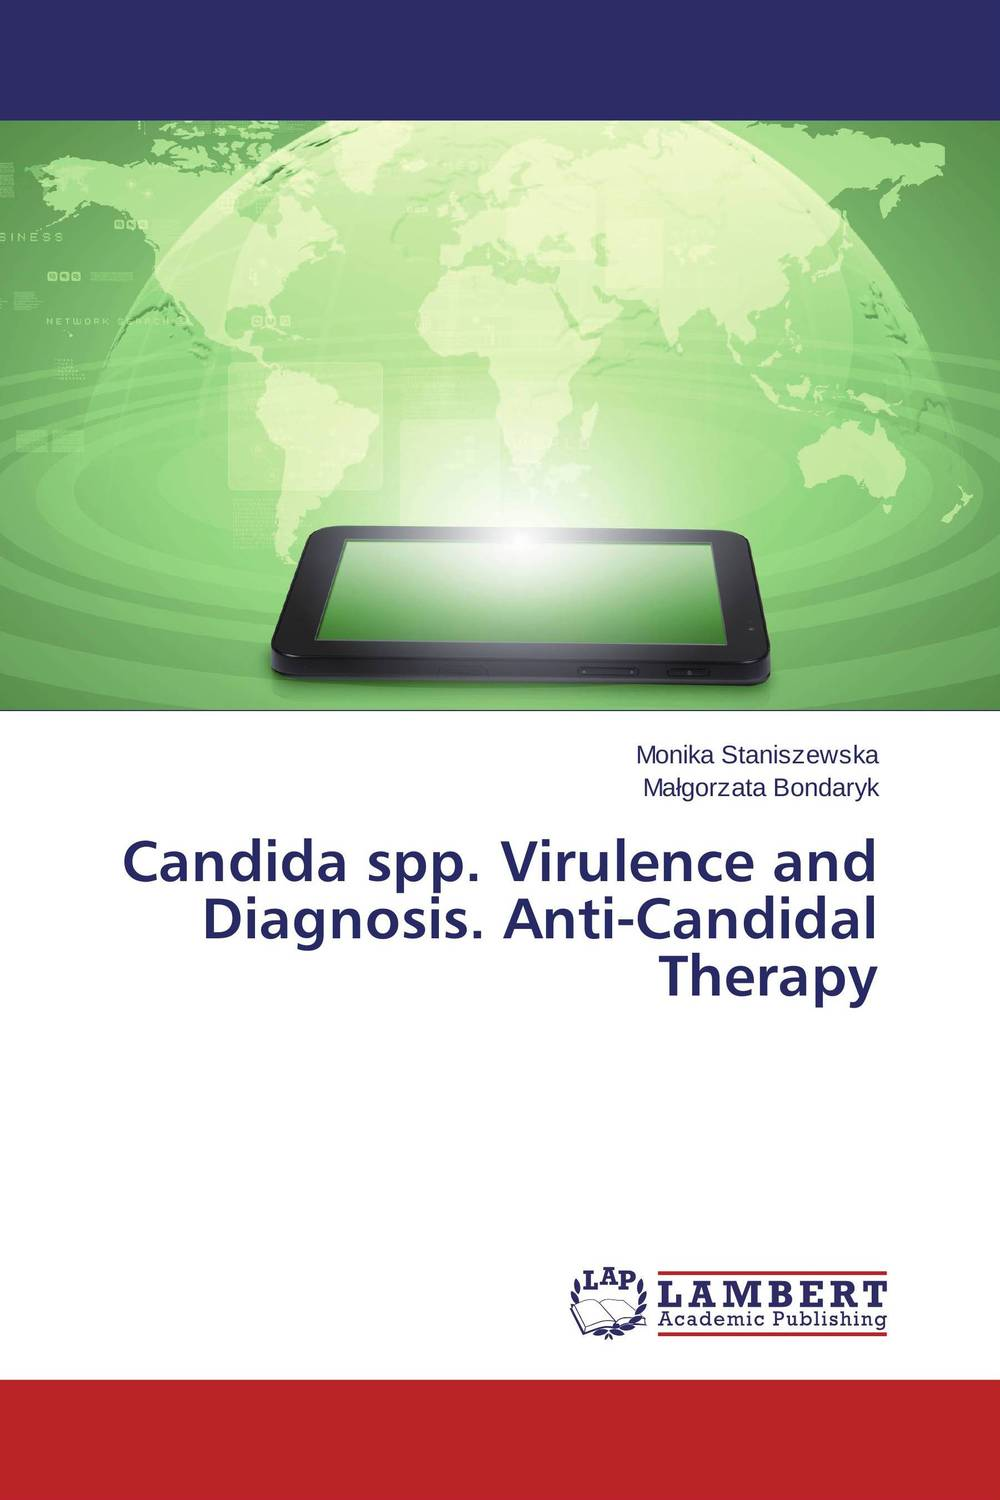 Candida spp. Virulence and Diagnosis. Anti-Candidal Therapy dr david m mburu prof mary w ndungu and prof ahmed hassanali virulence and repellency of fungi on macrotermes and mediating signals